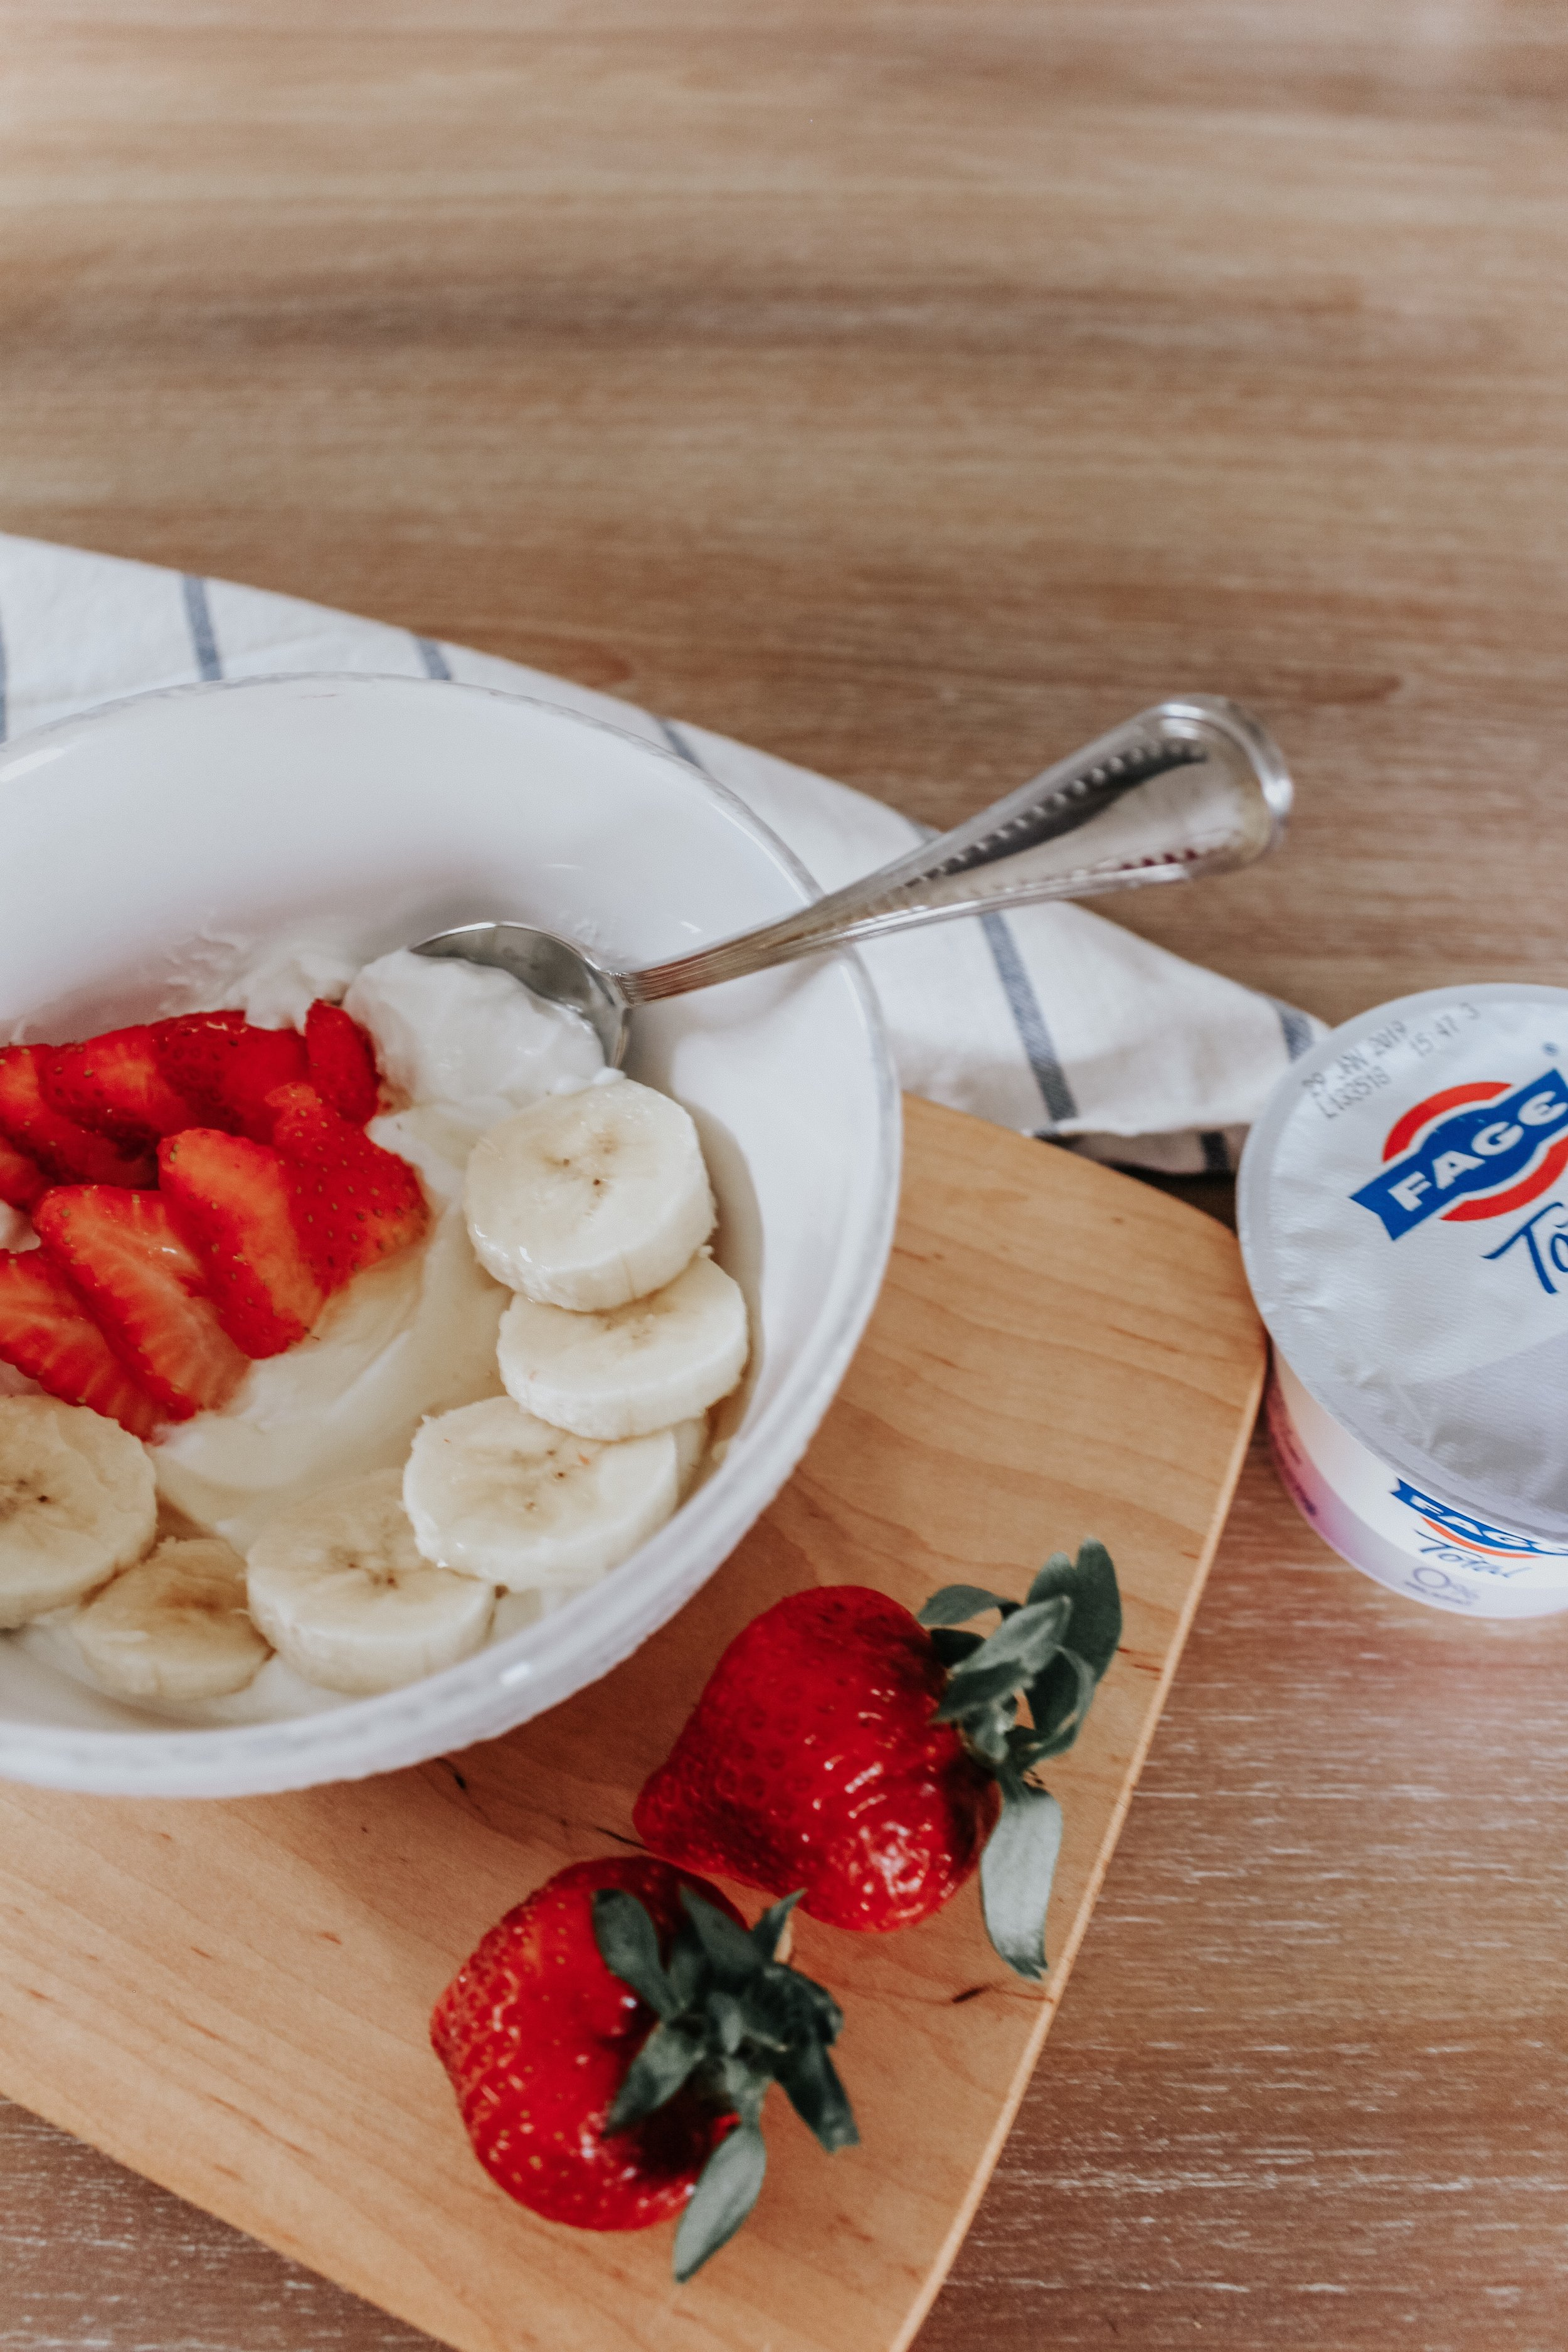 Strawberry Banana Greek Yogurt Bowl